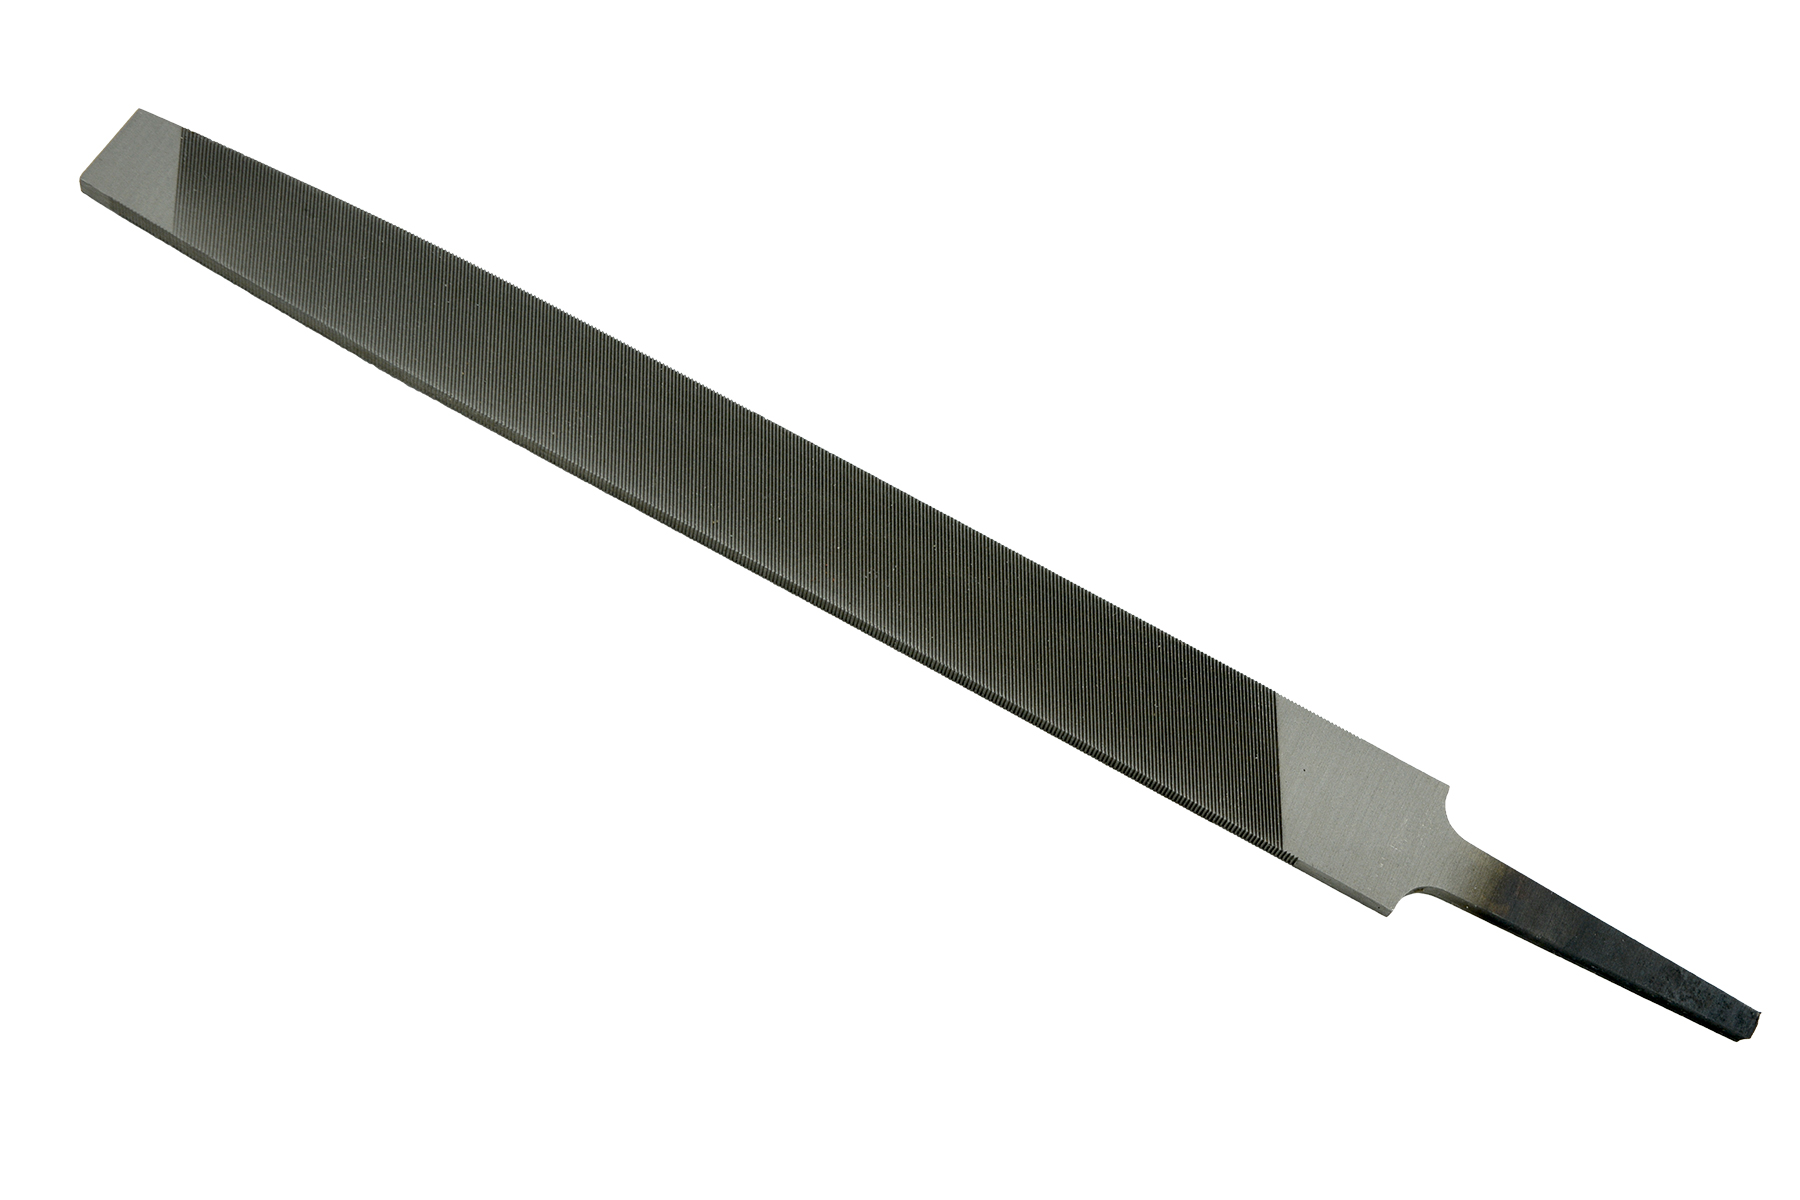 Zenport Deluxe Sharpening File AGF200AA High Quality Mill Bastard File, 8-Inch (200 mm), for sharpening pruners and knives